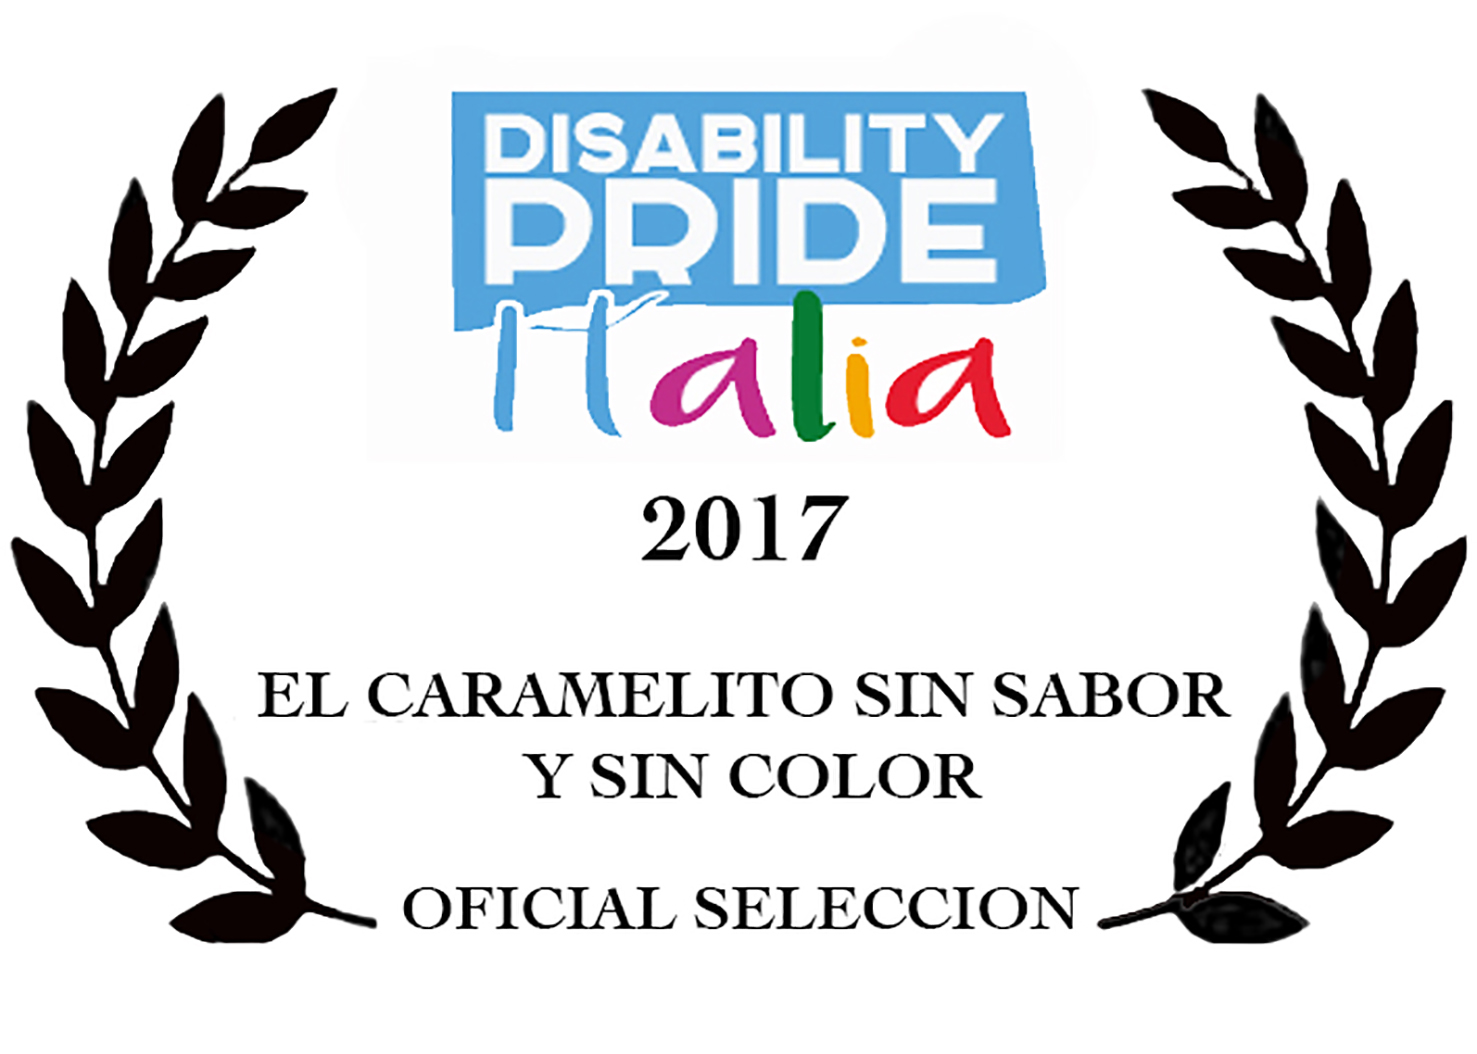 LAURELES-ELCARAMELITO-disability-italia.